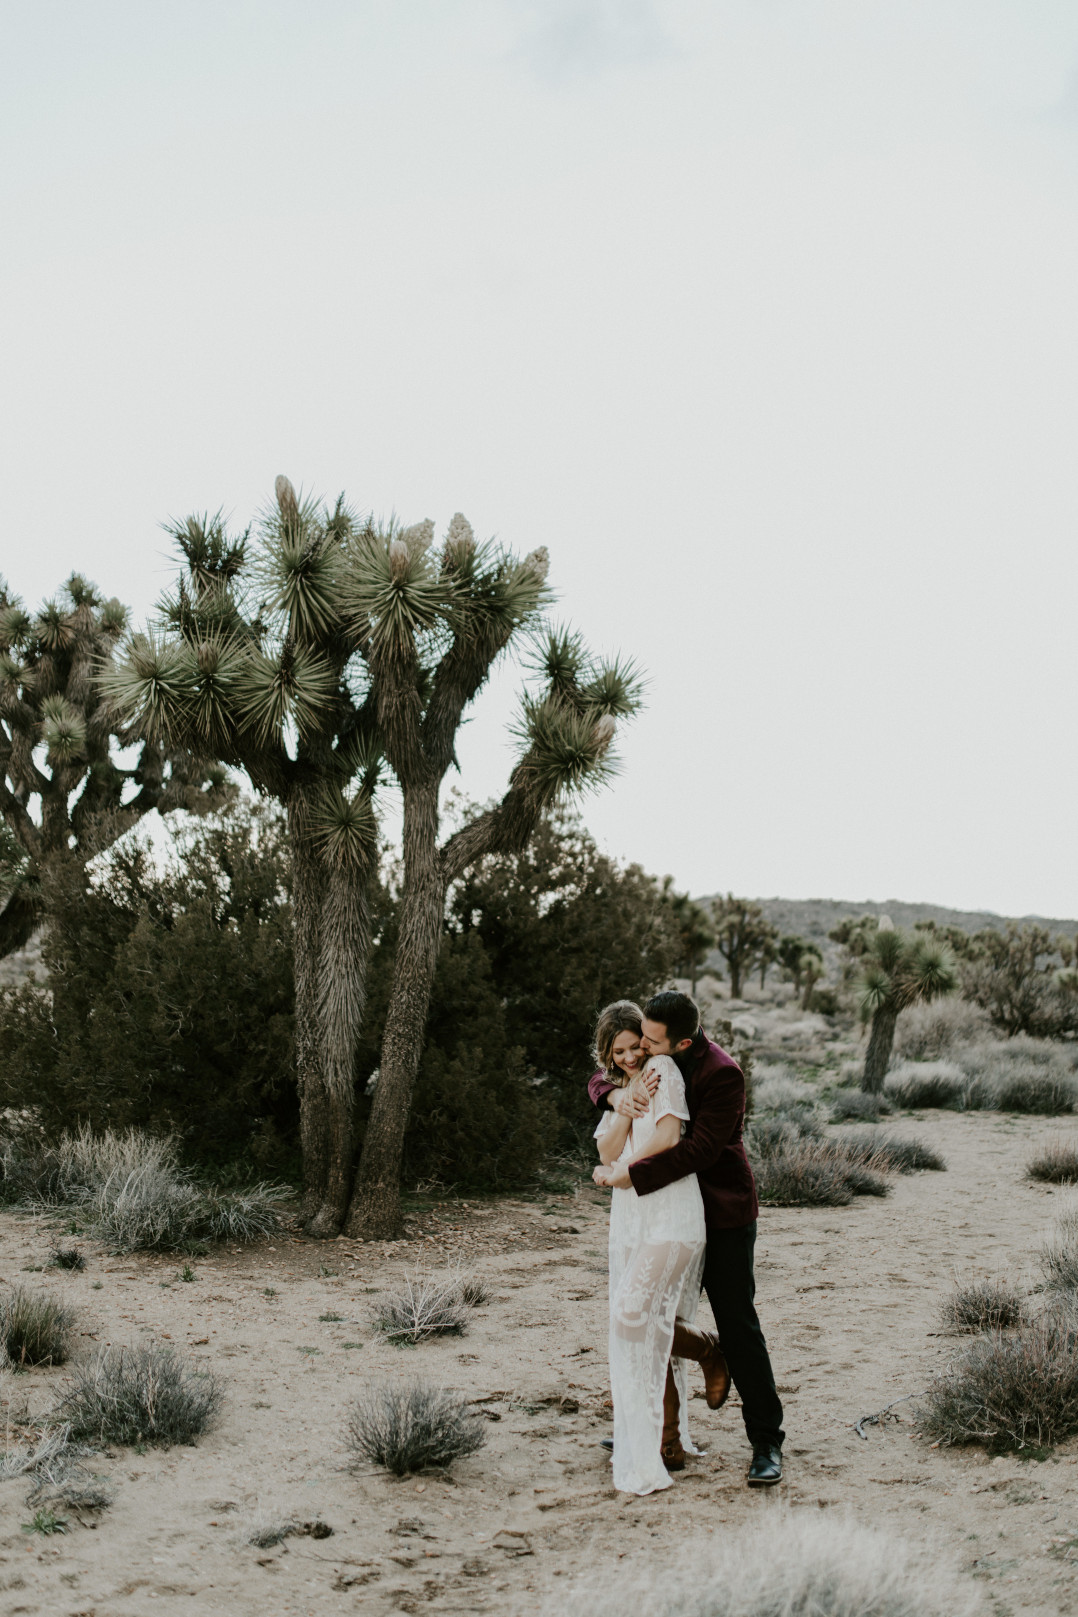 Jeremy and Alyssa hug. Elopement wedding photography at Joshua Tree National Park by Sienna Plus Josh.